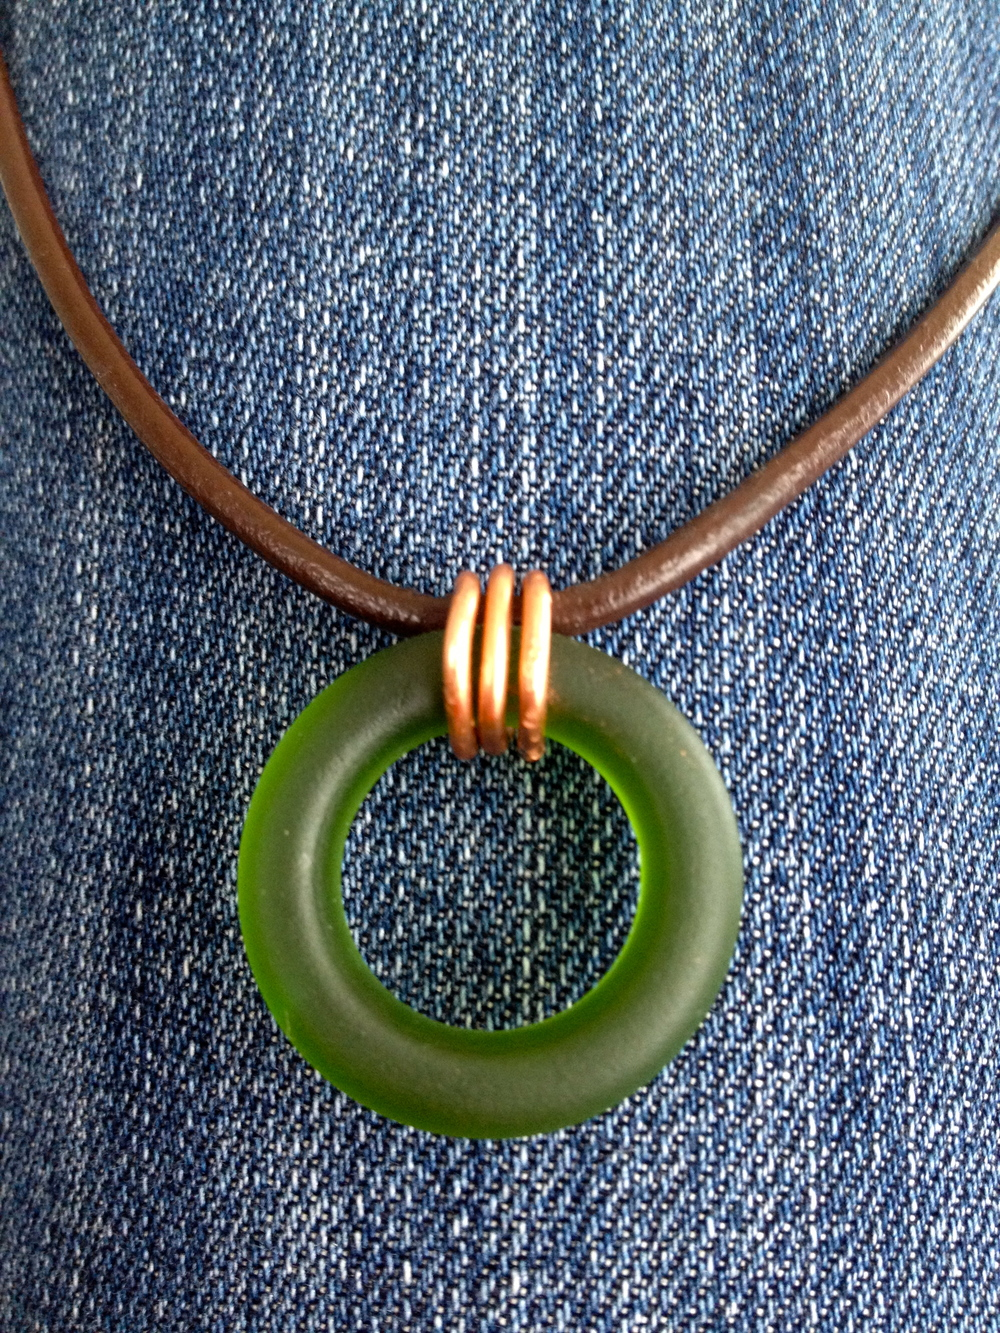 Copy of bottle glass necklace with copper wiring and leather cord.jpg